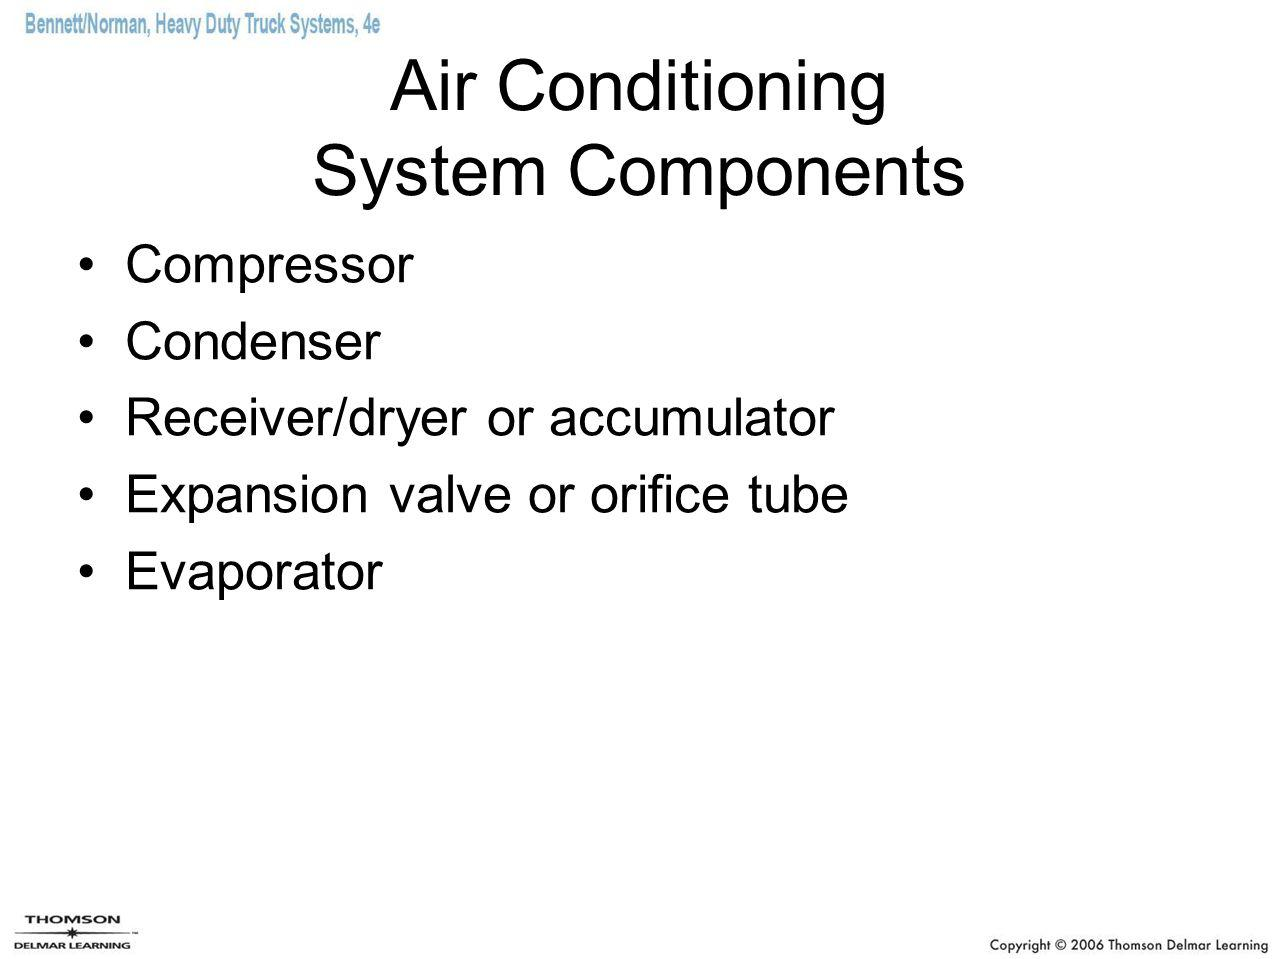 Air Conditioning System Components